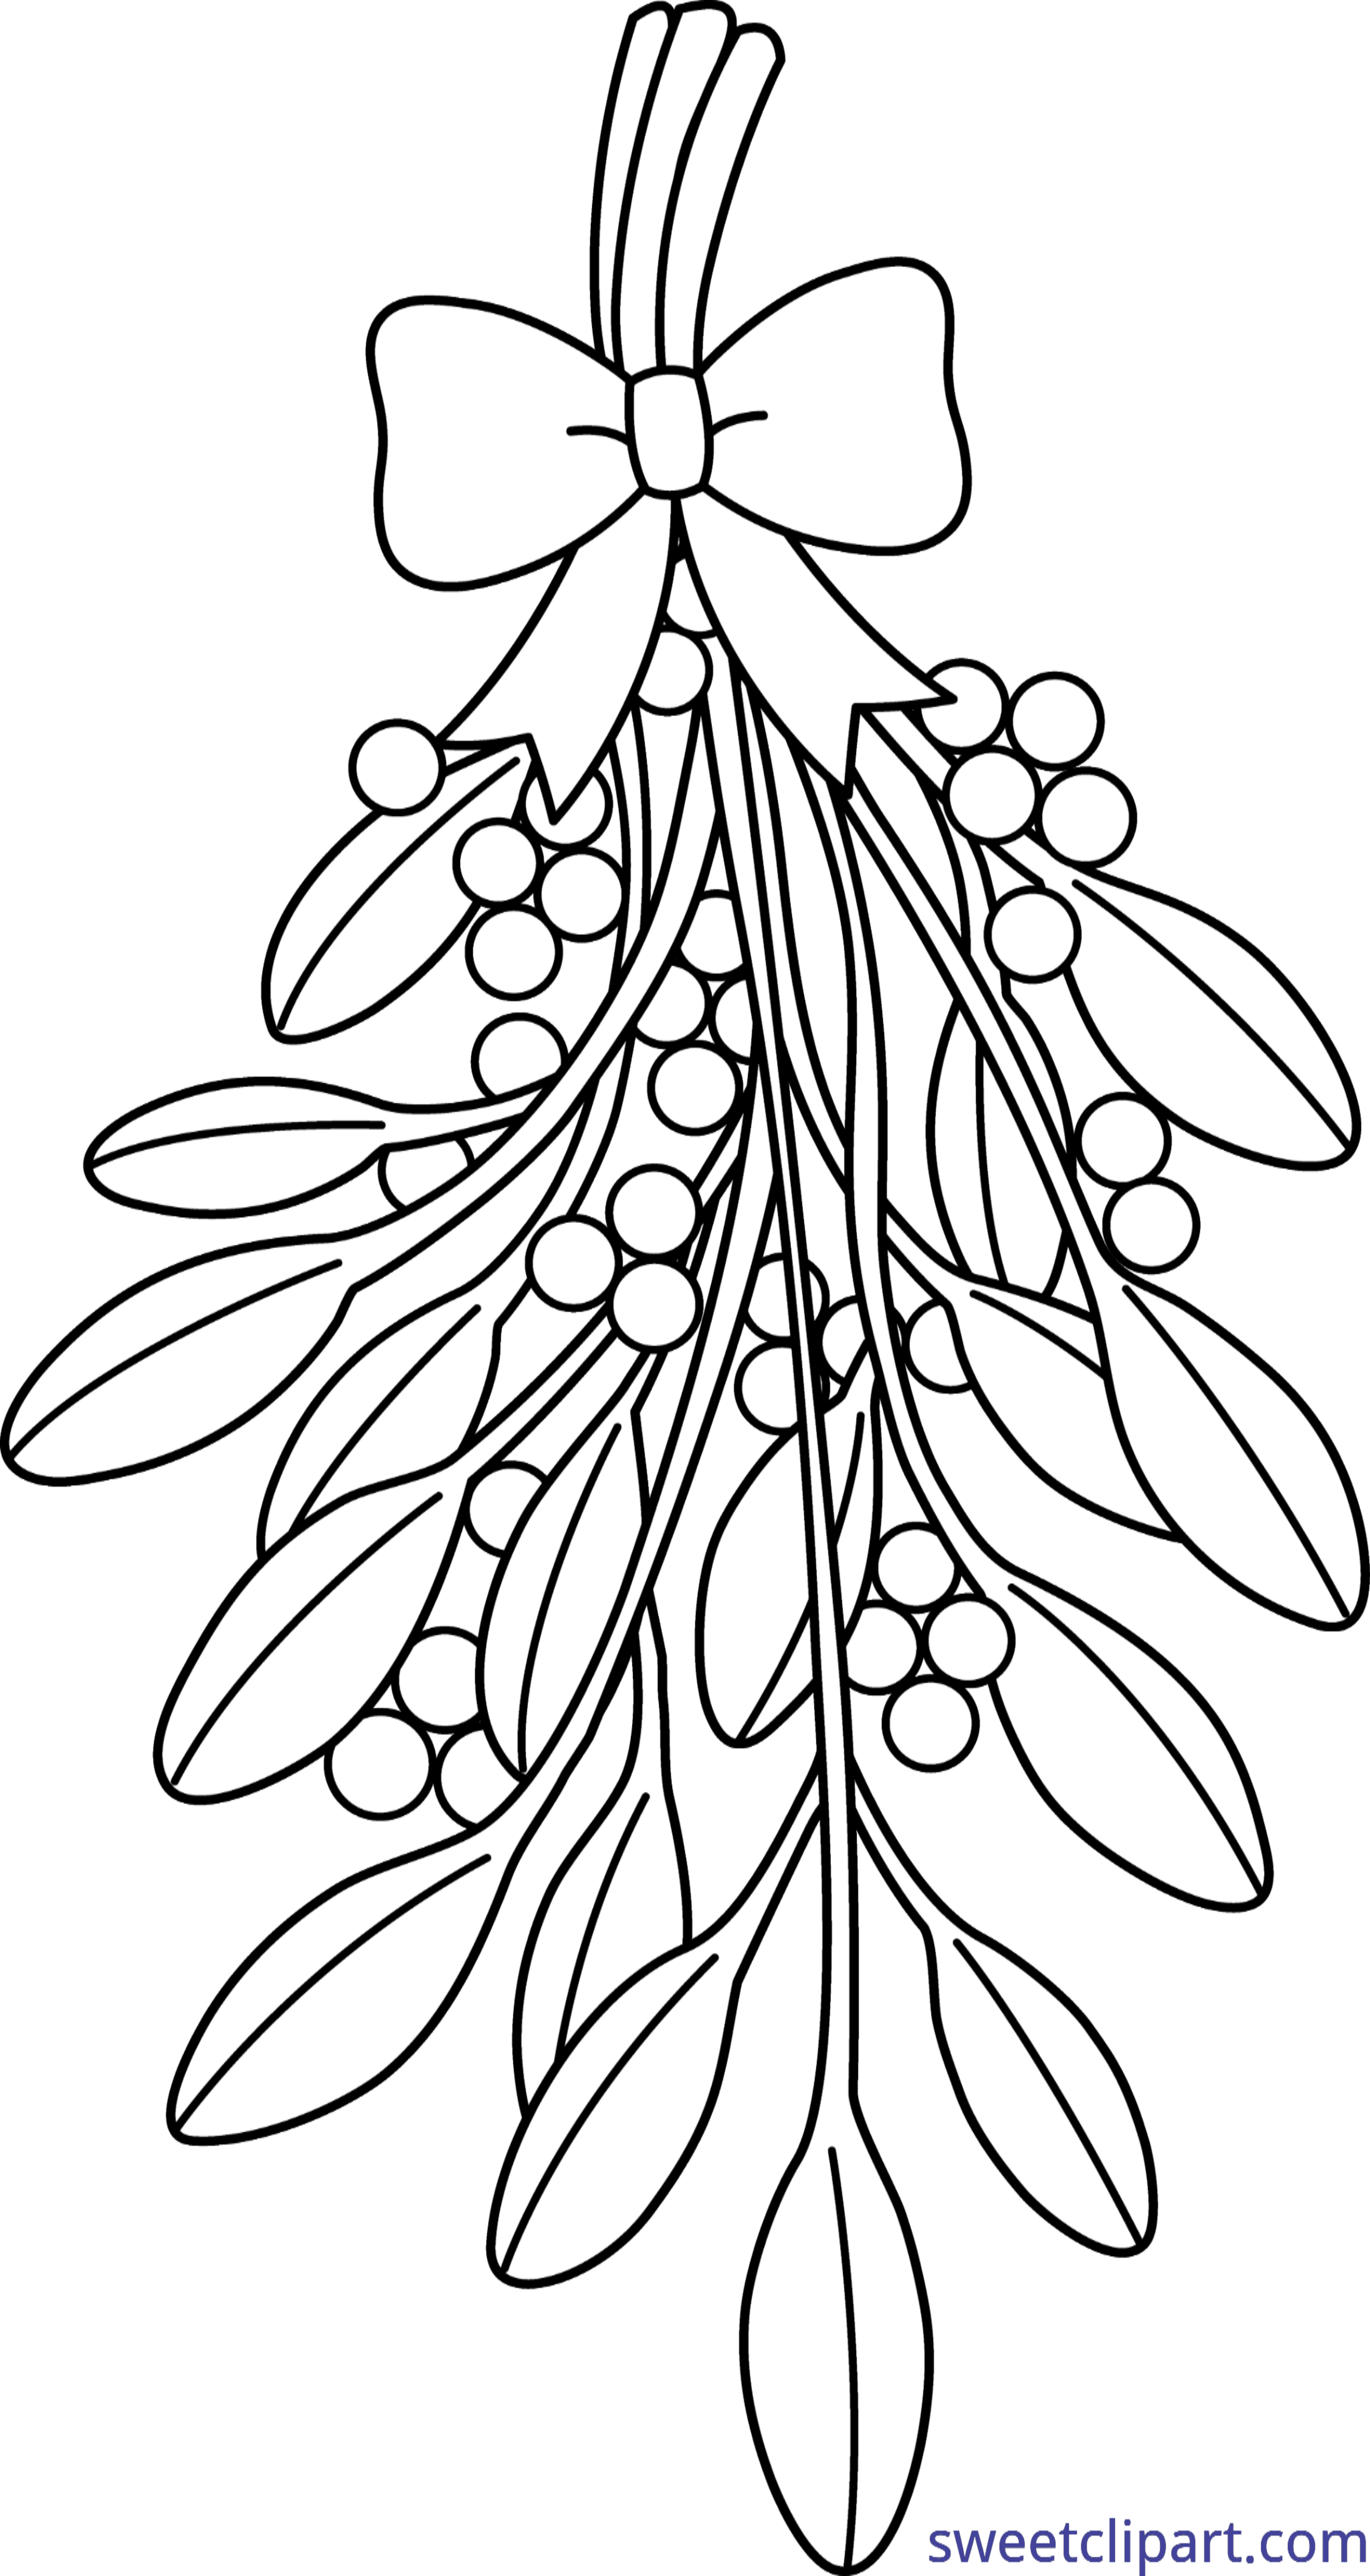 Mistletoe clipart tumblr transparent. Coloring page clip art